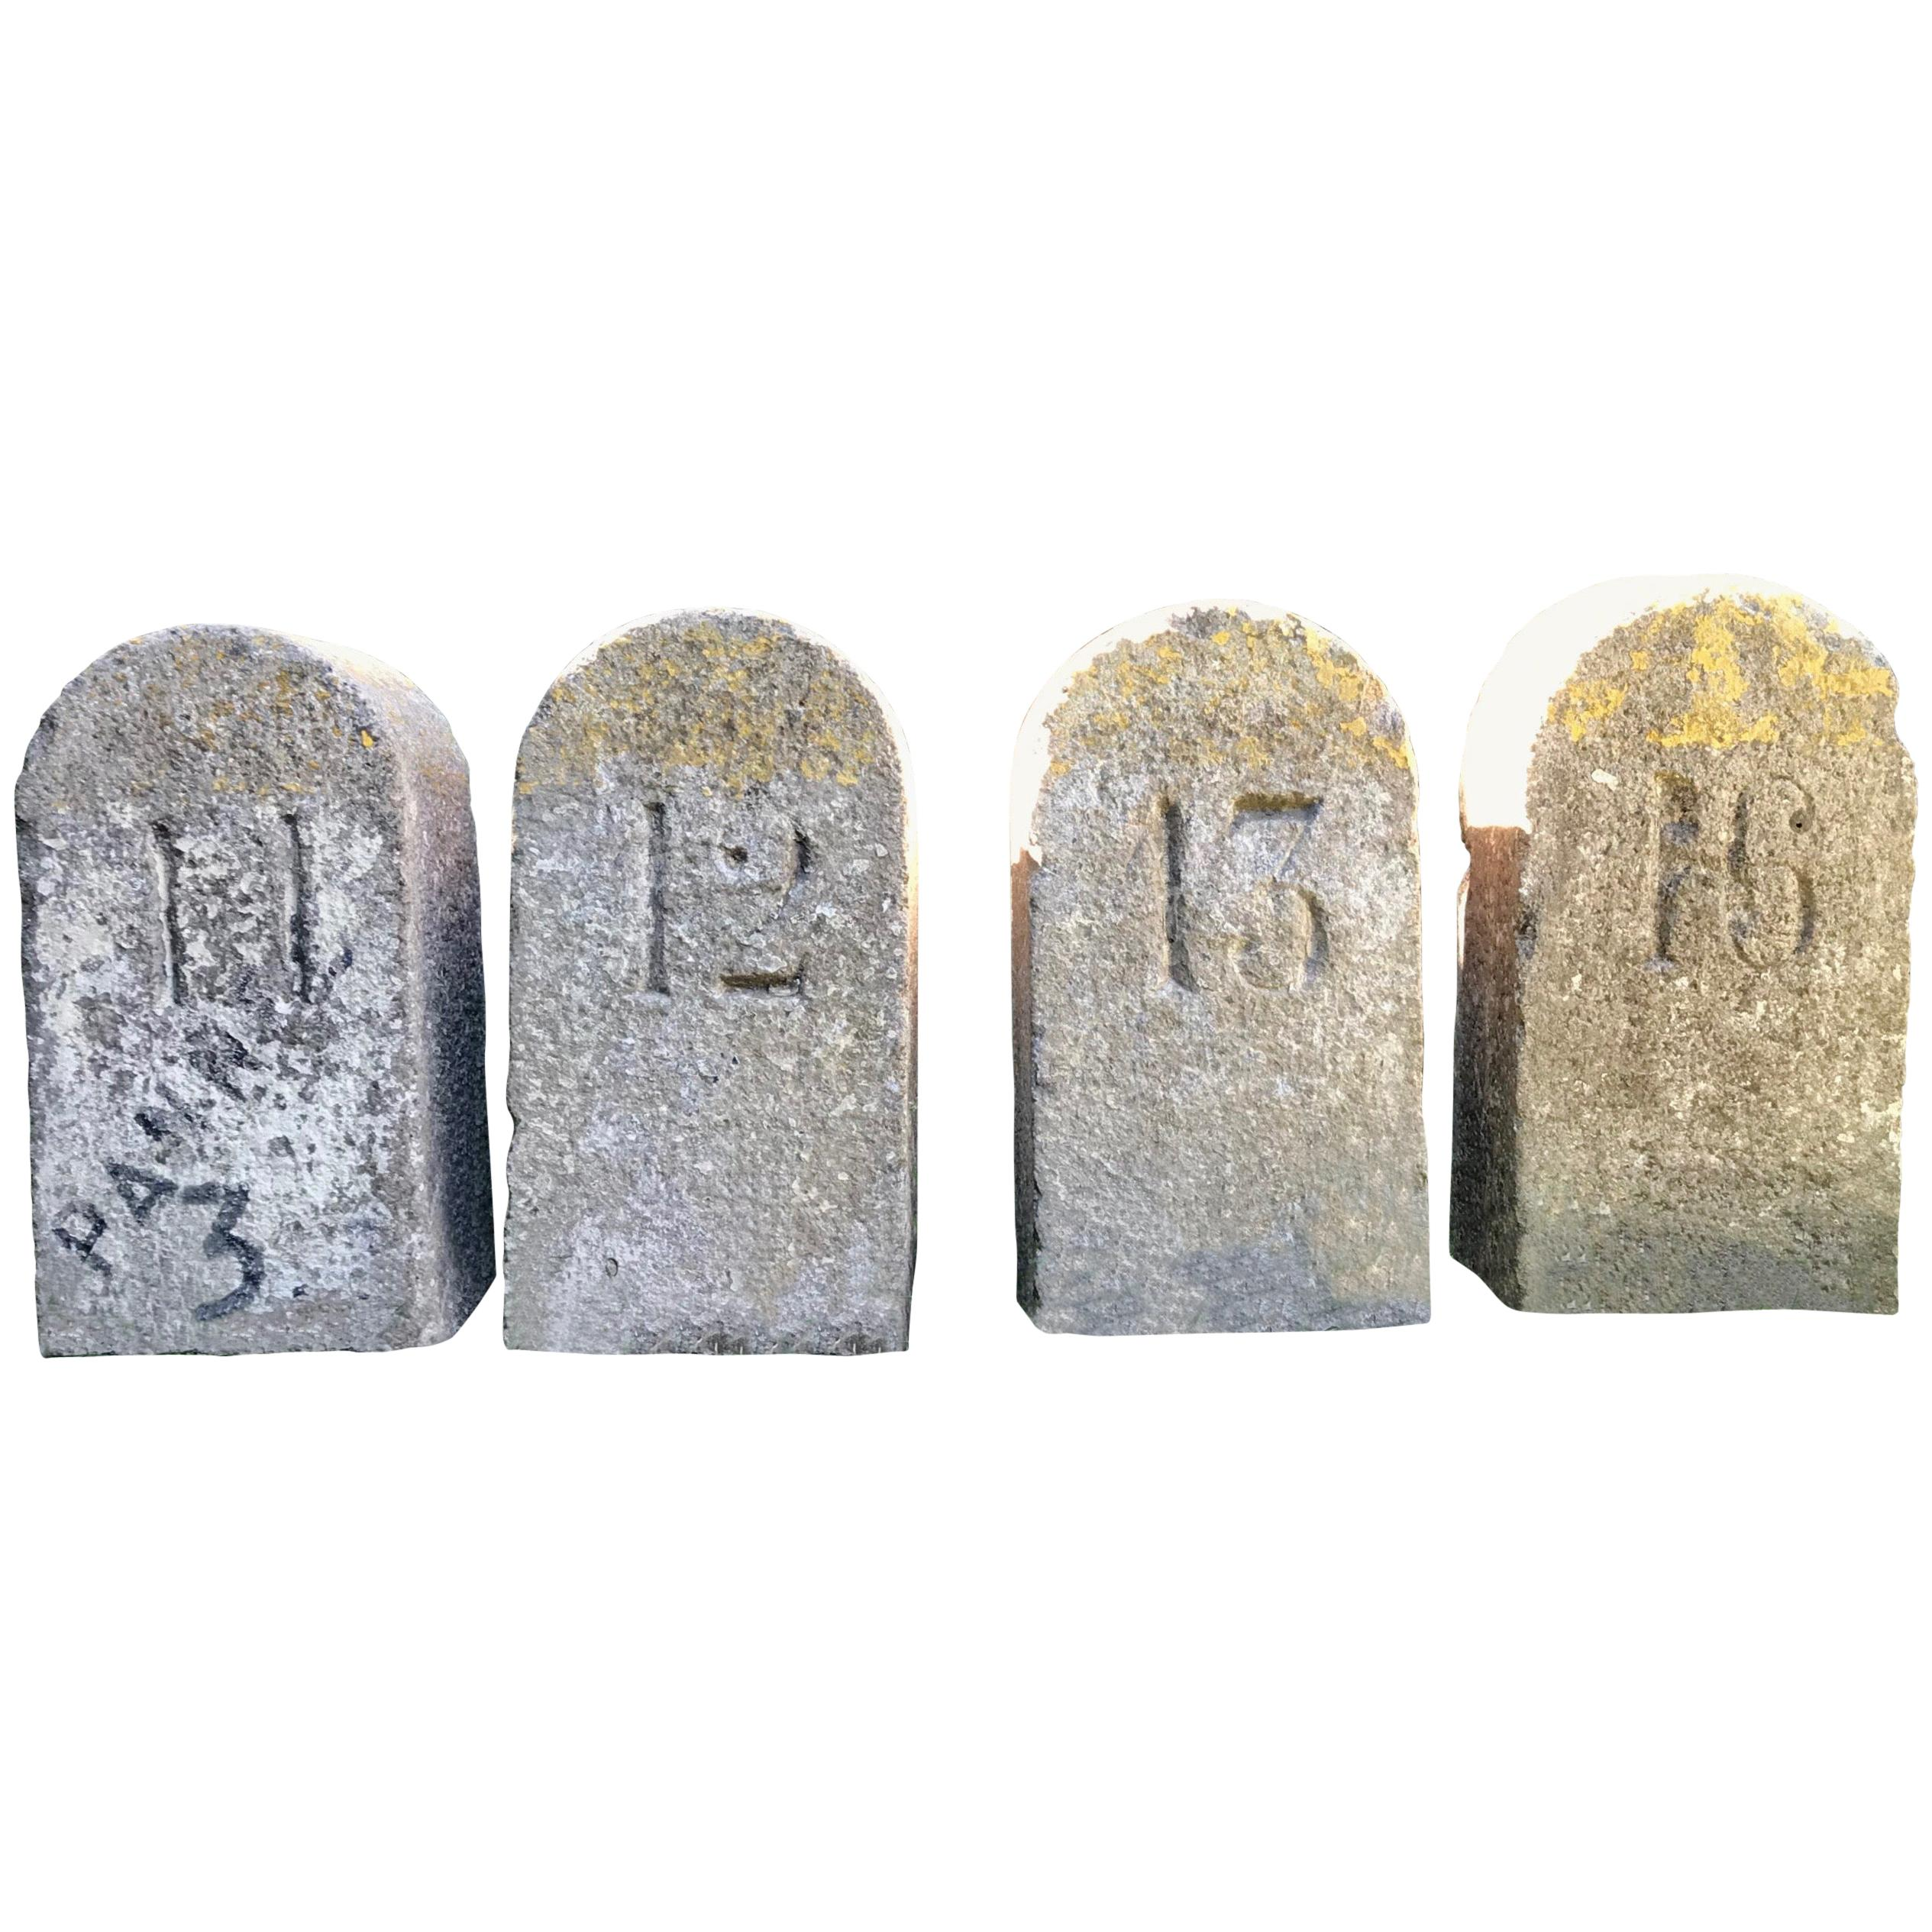 French 19th Century Carved Stone Markers Numbered 11, 12, 13 and 16